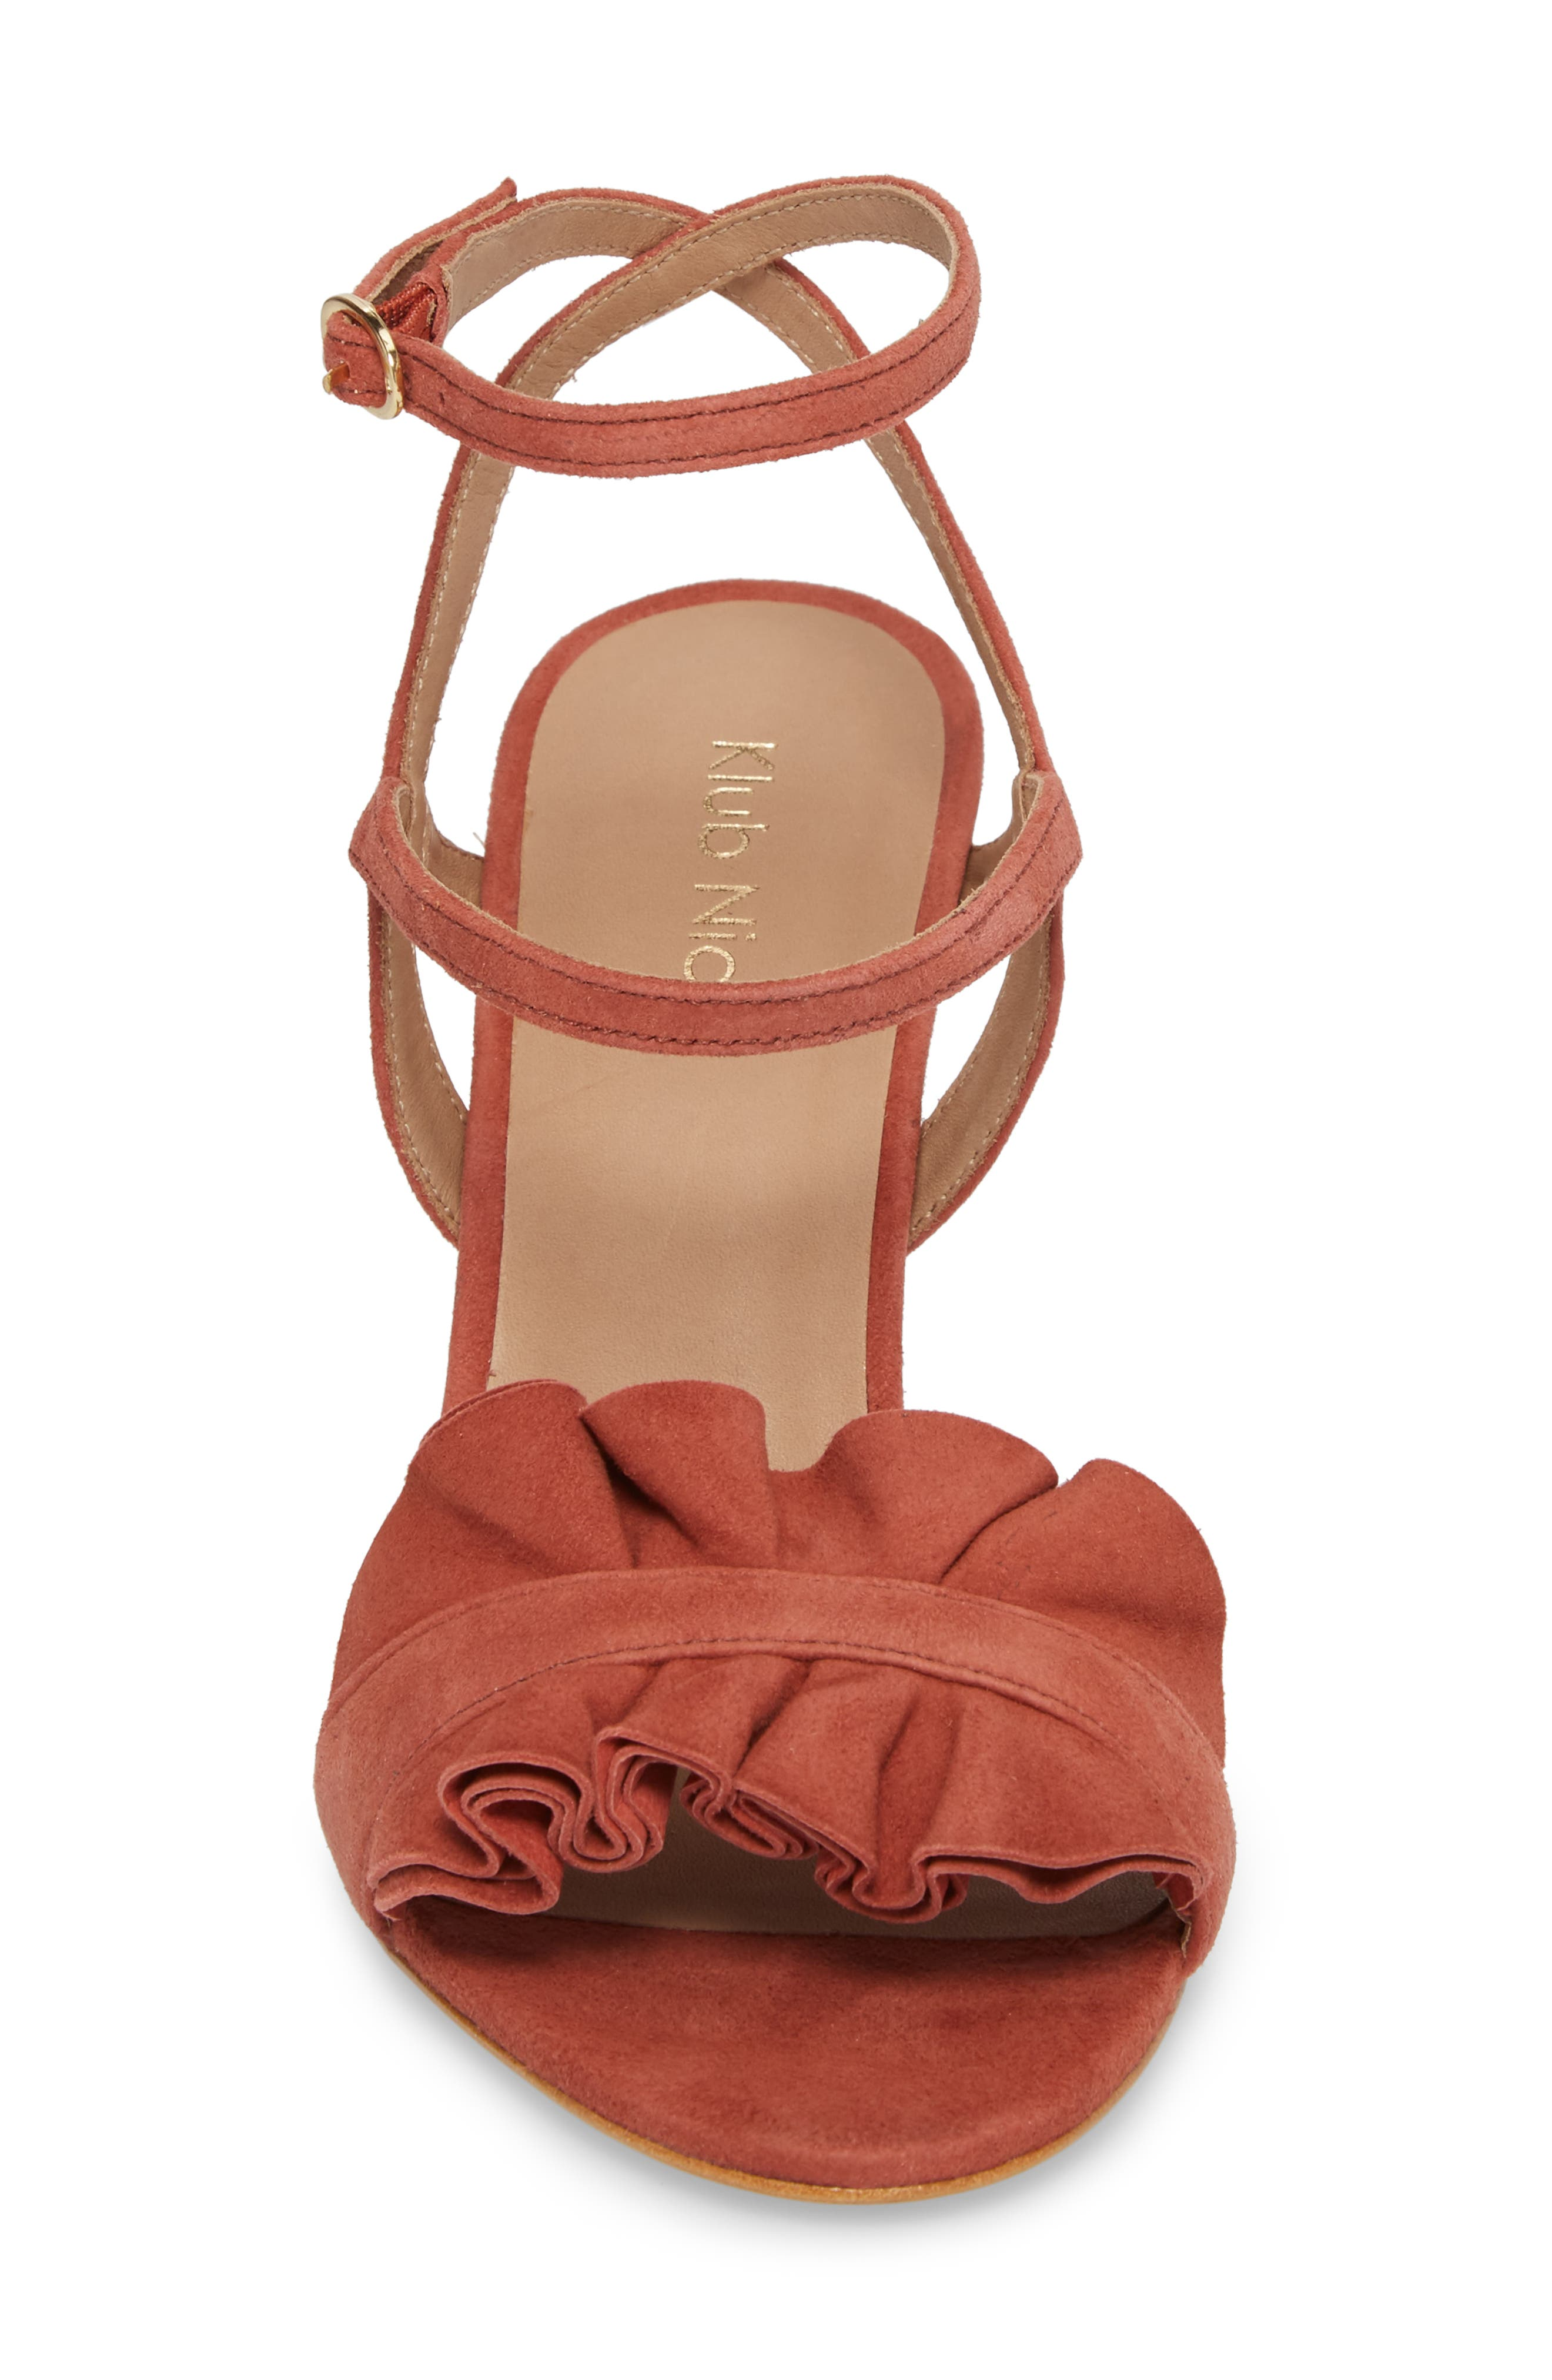 Ansley Sandal,                             Alternate thumbnail 4, color,                             Spice Suede